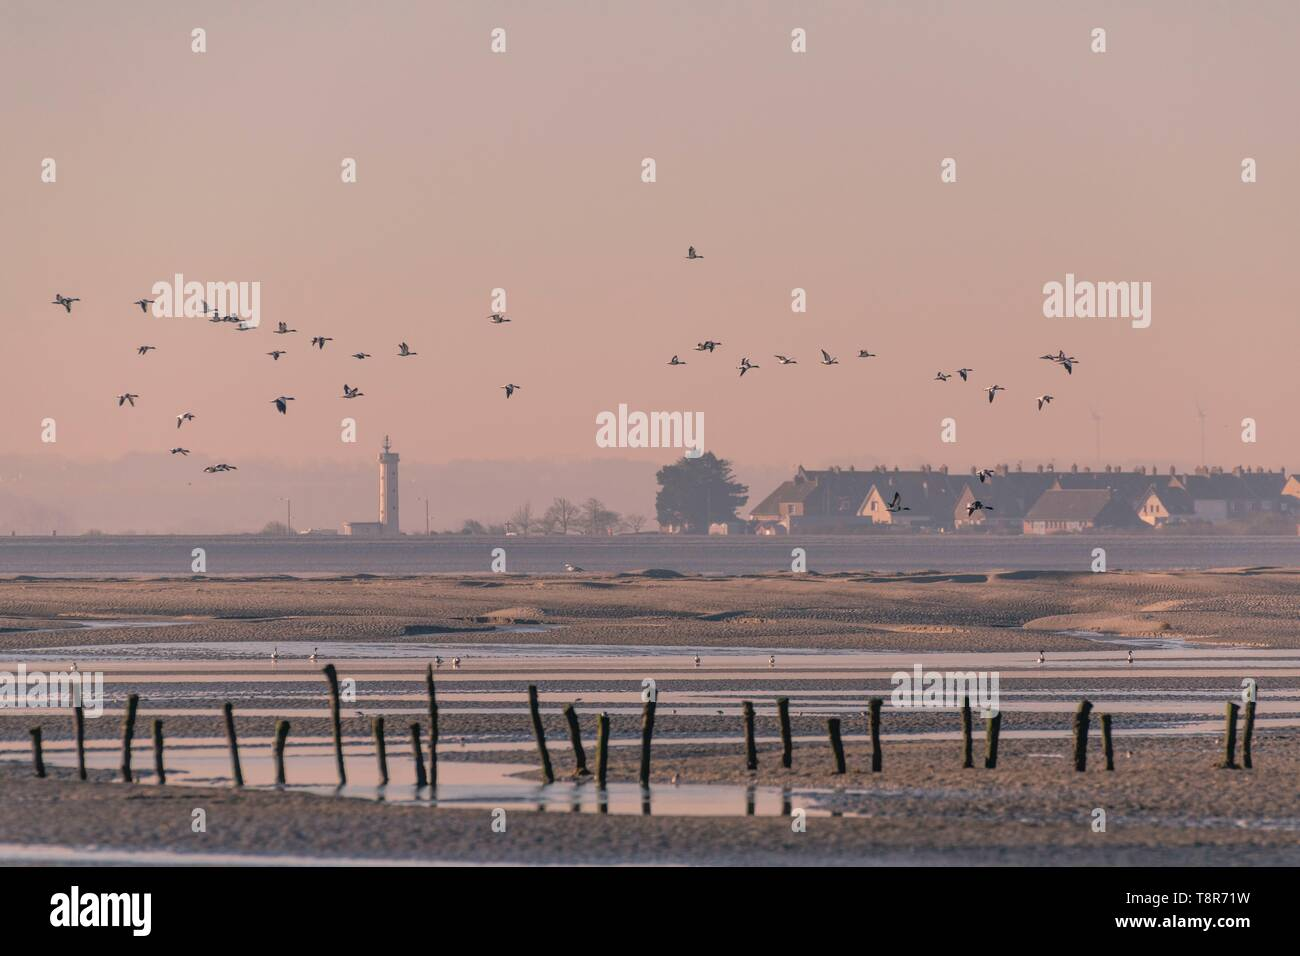 France, Somme, Baie de Somme, Natural Reserve of the Baie de Somme, Le Crotoy, passage of Common Shelducks (Tadorna tadorna ) vis-a-vis the Hourdel in the natural reserve - Stock Image